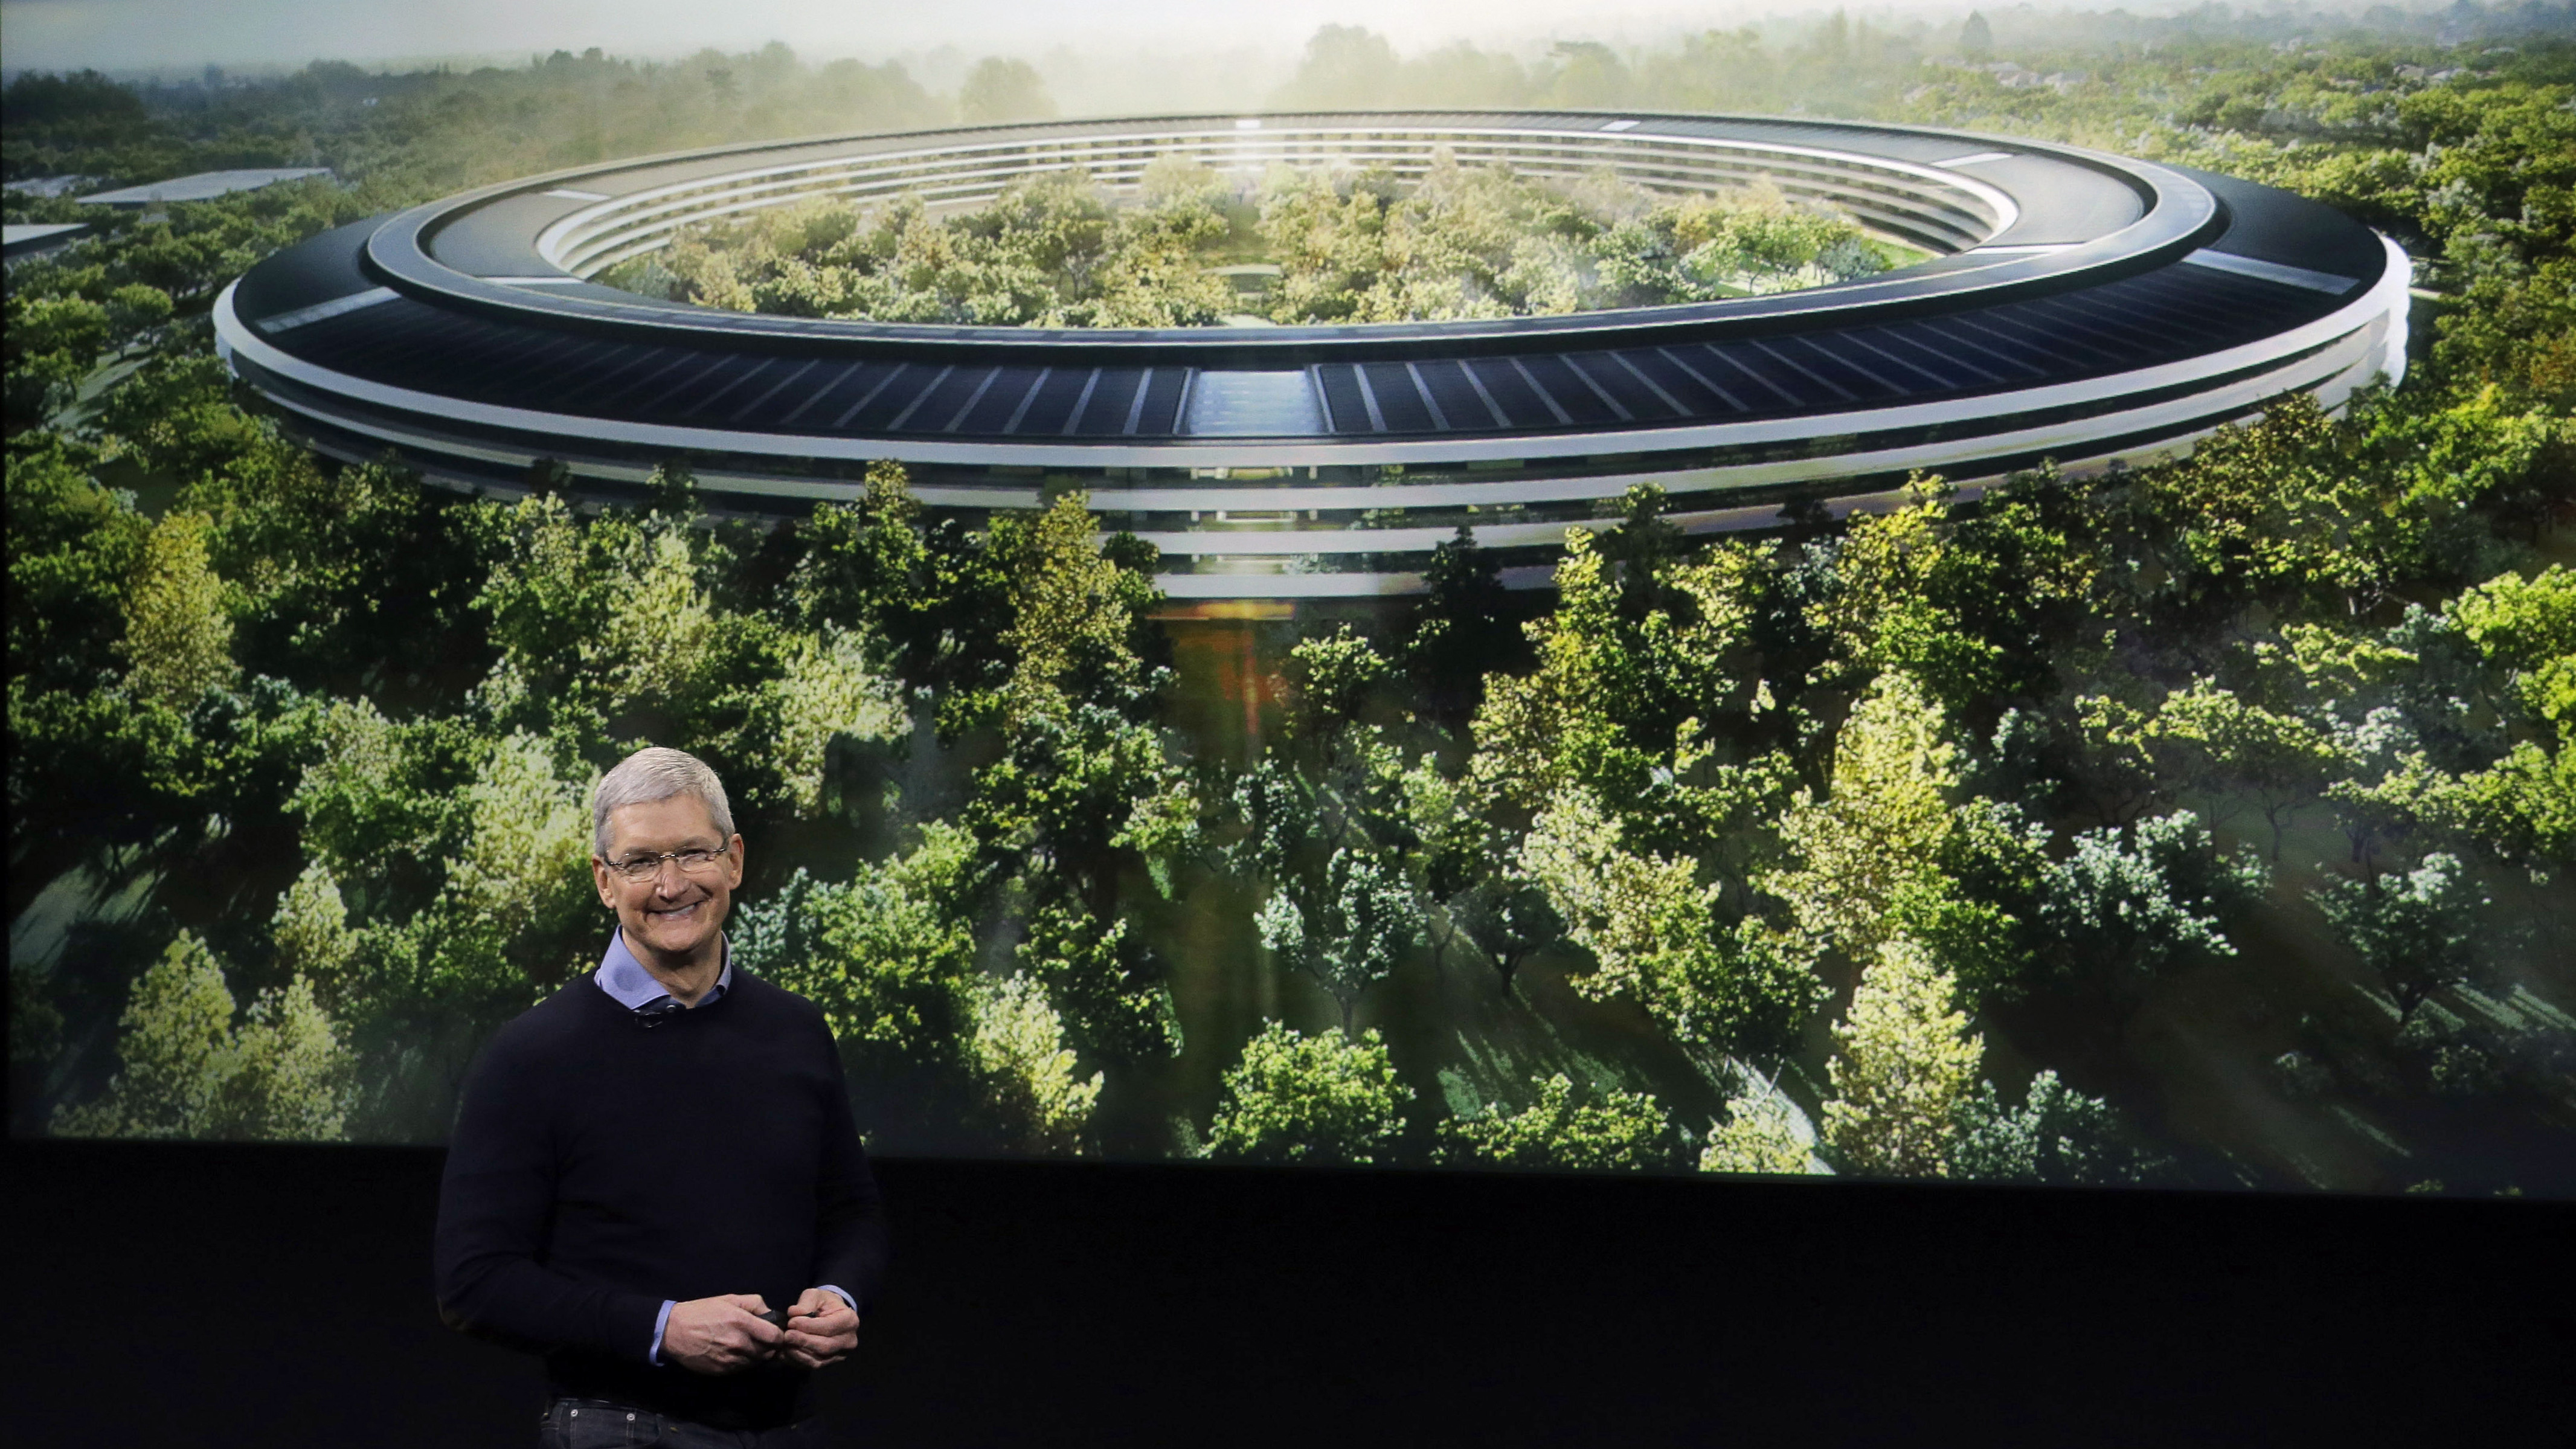 Apple CEO Tim Cook, discusses the new Apple campus at an event to announce new products at Apple headquarters Monday, March 21, 2016, in Cupertino, Calif. (AP Photo/Marcio Jose Sanchez)